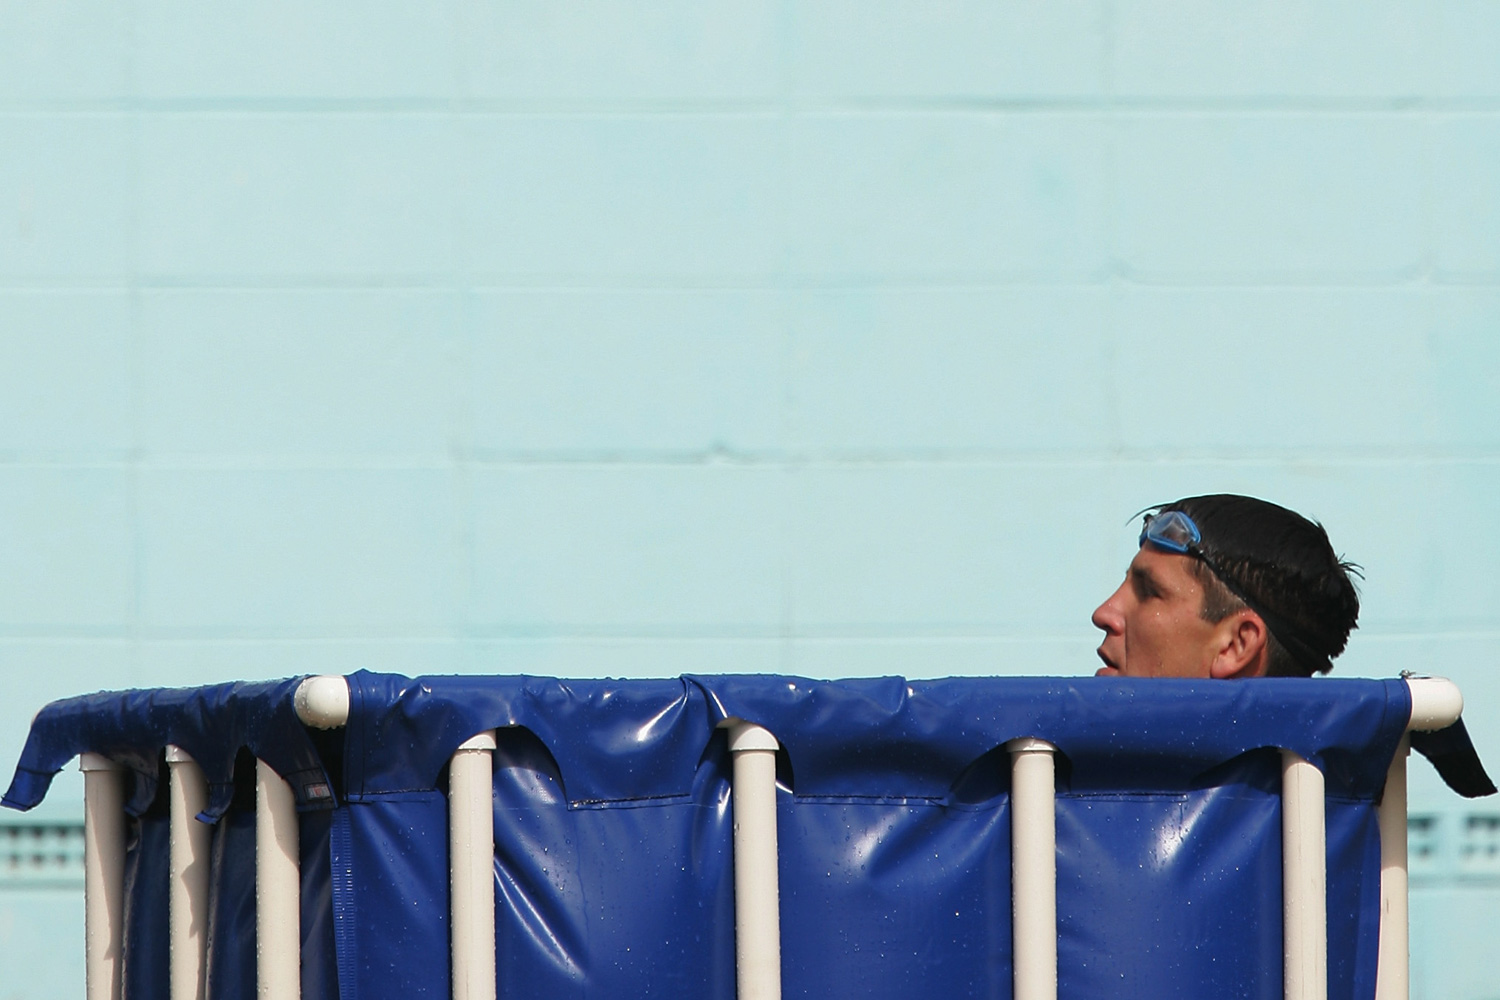 Former Australian rugby league footballer Steve Price takes an ice bath during a recovery session after the second week of the NRL finals between the Bulldogs and the Melbourne Storm at the Canterbury Pool.